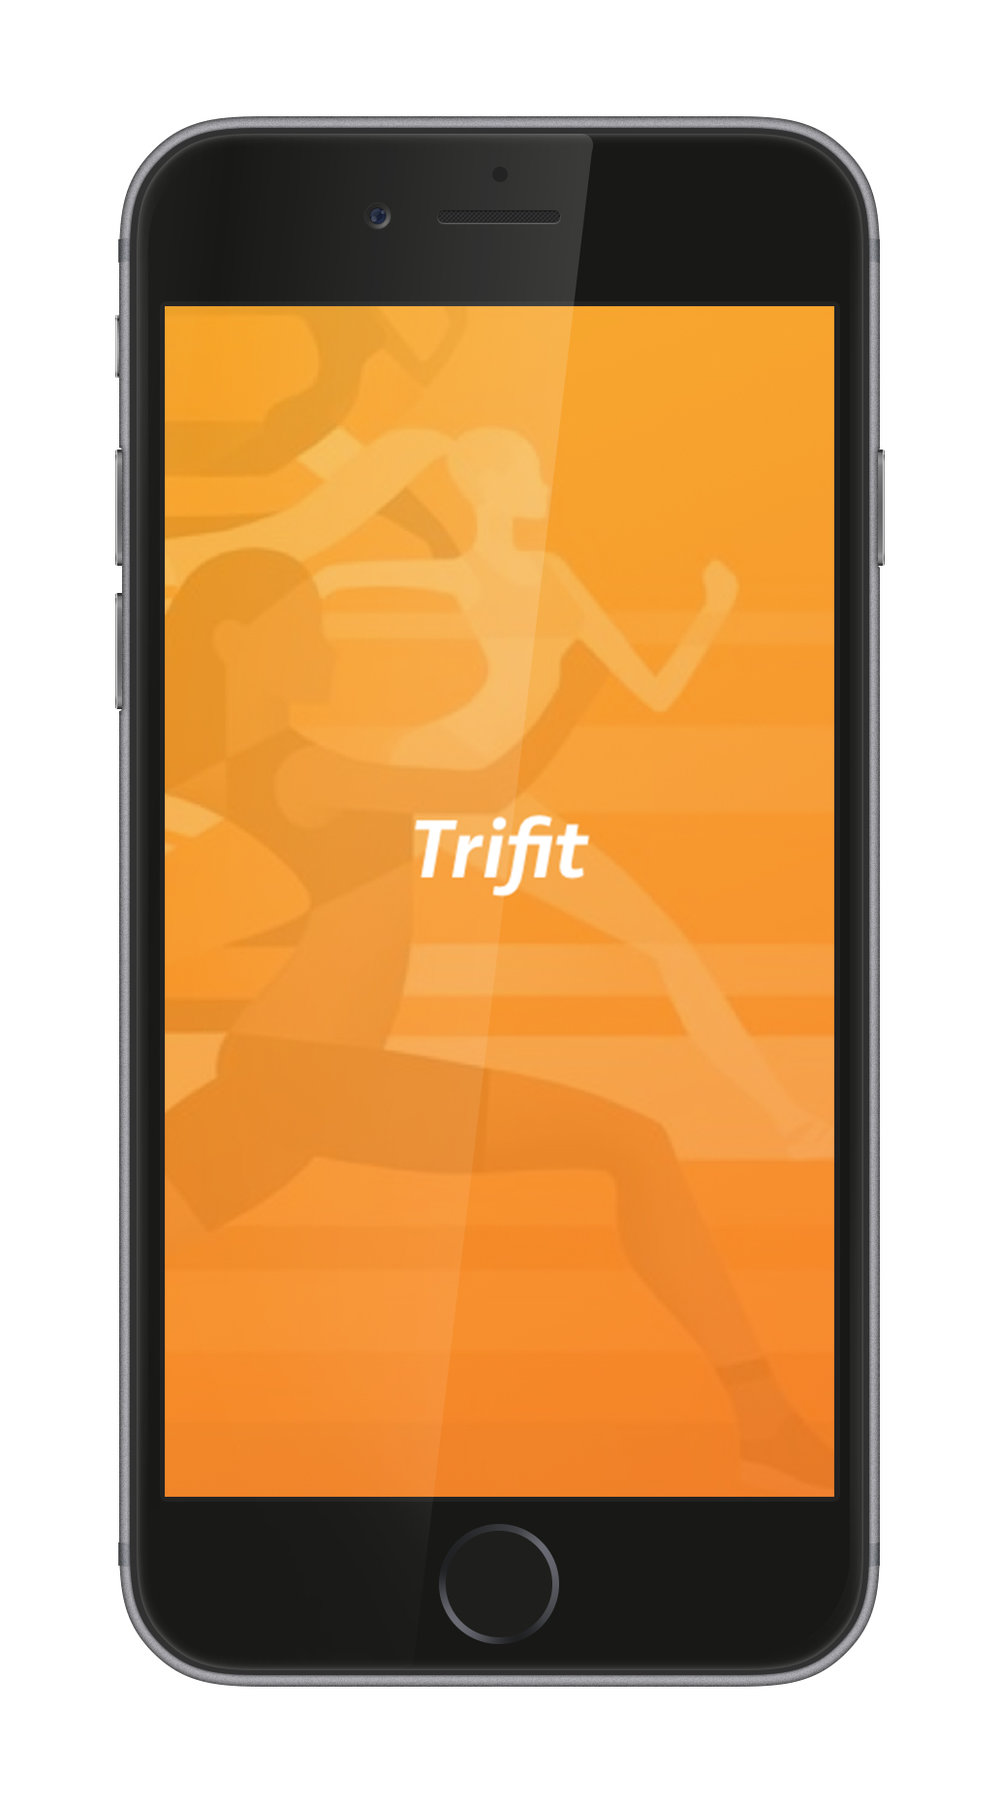 Trifit App Load Screen